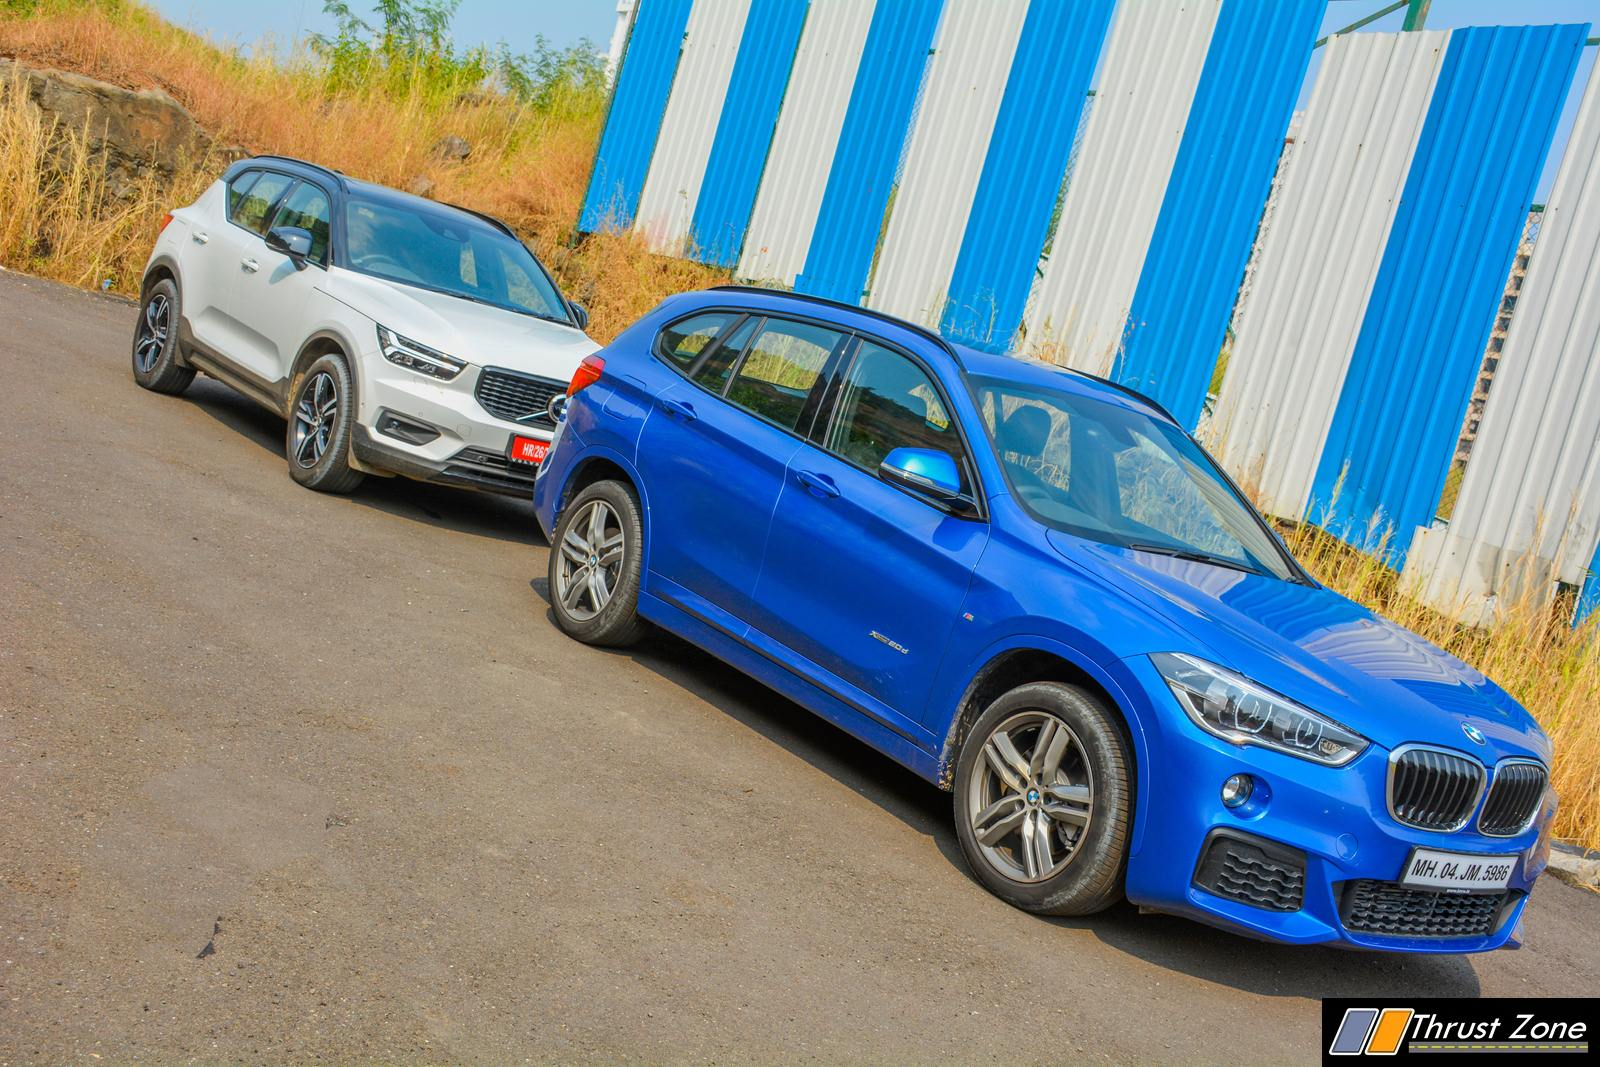 BMW X1 vs Volvo XC40 Diesel Comparison Review Shootout-11